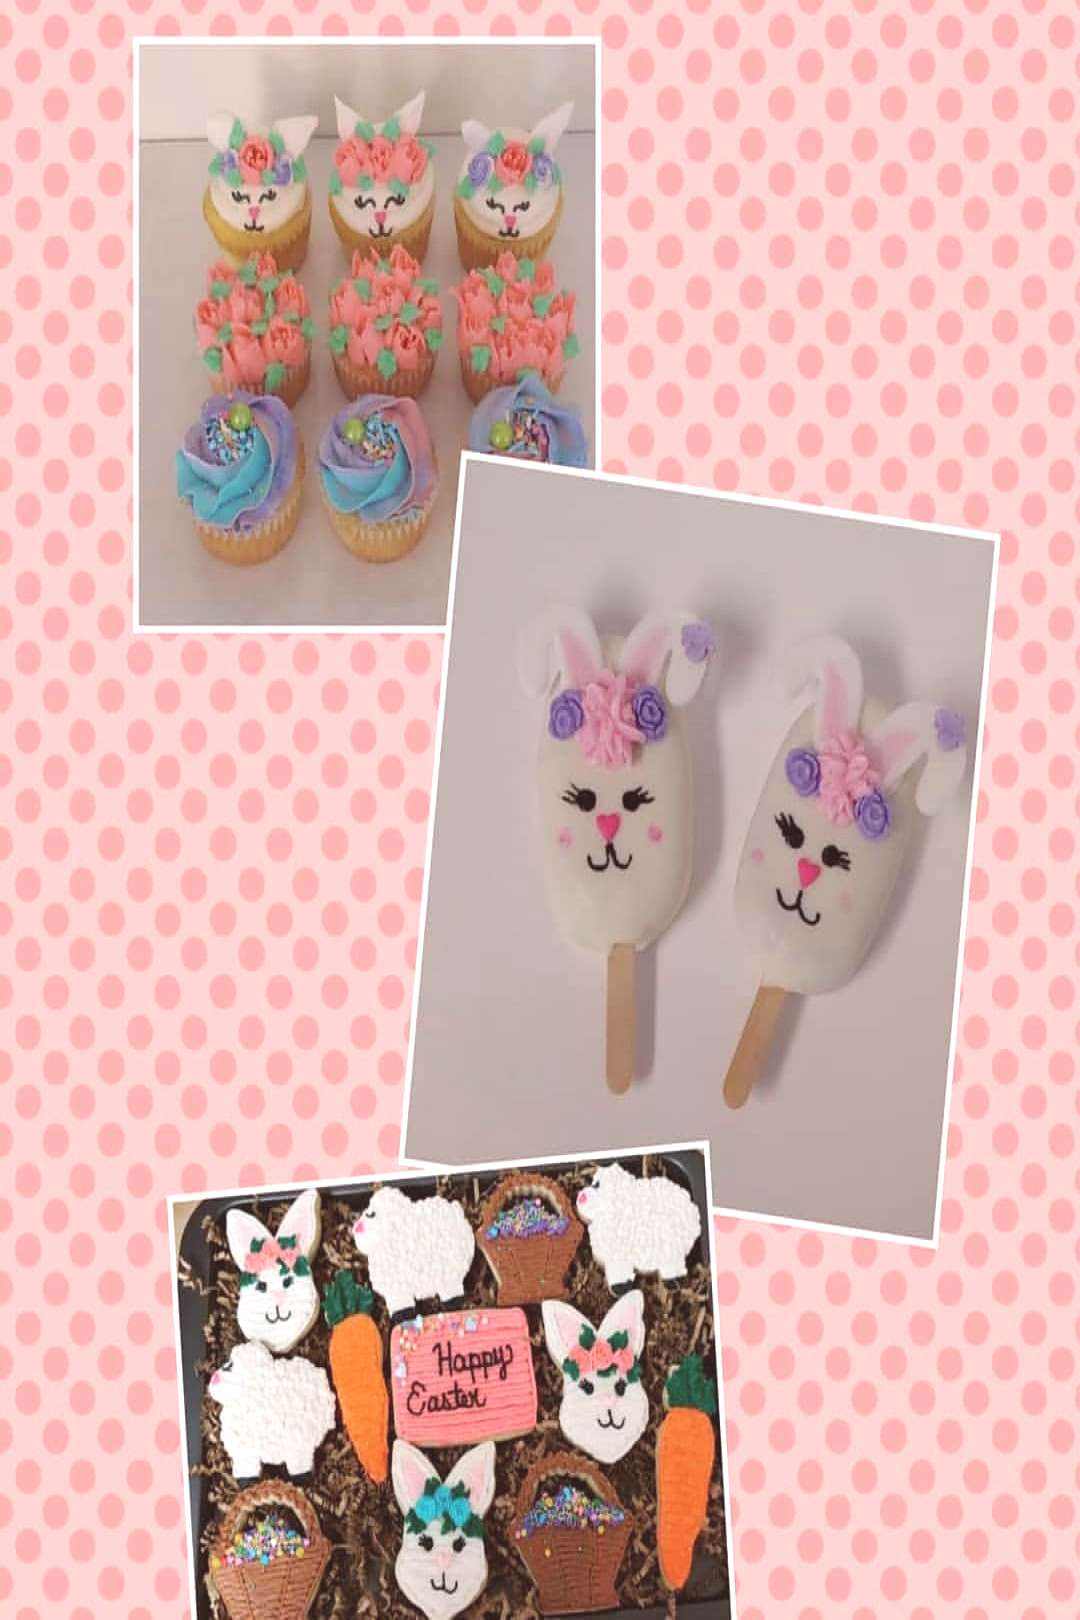 Im going through last couple years Easter treats trying to figur